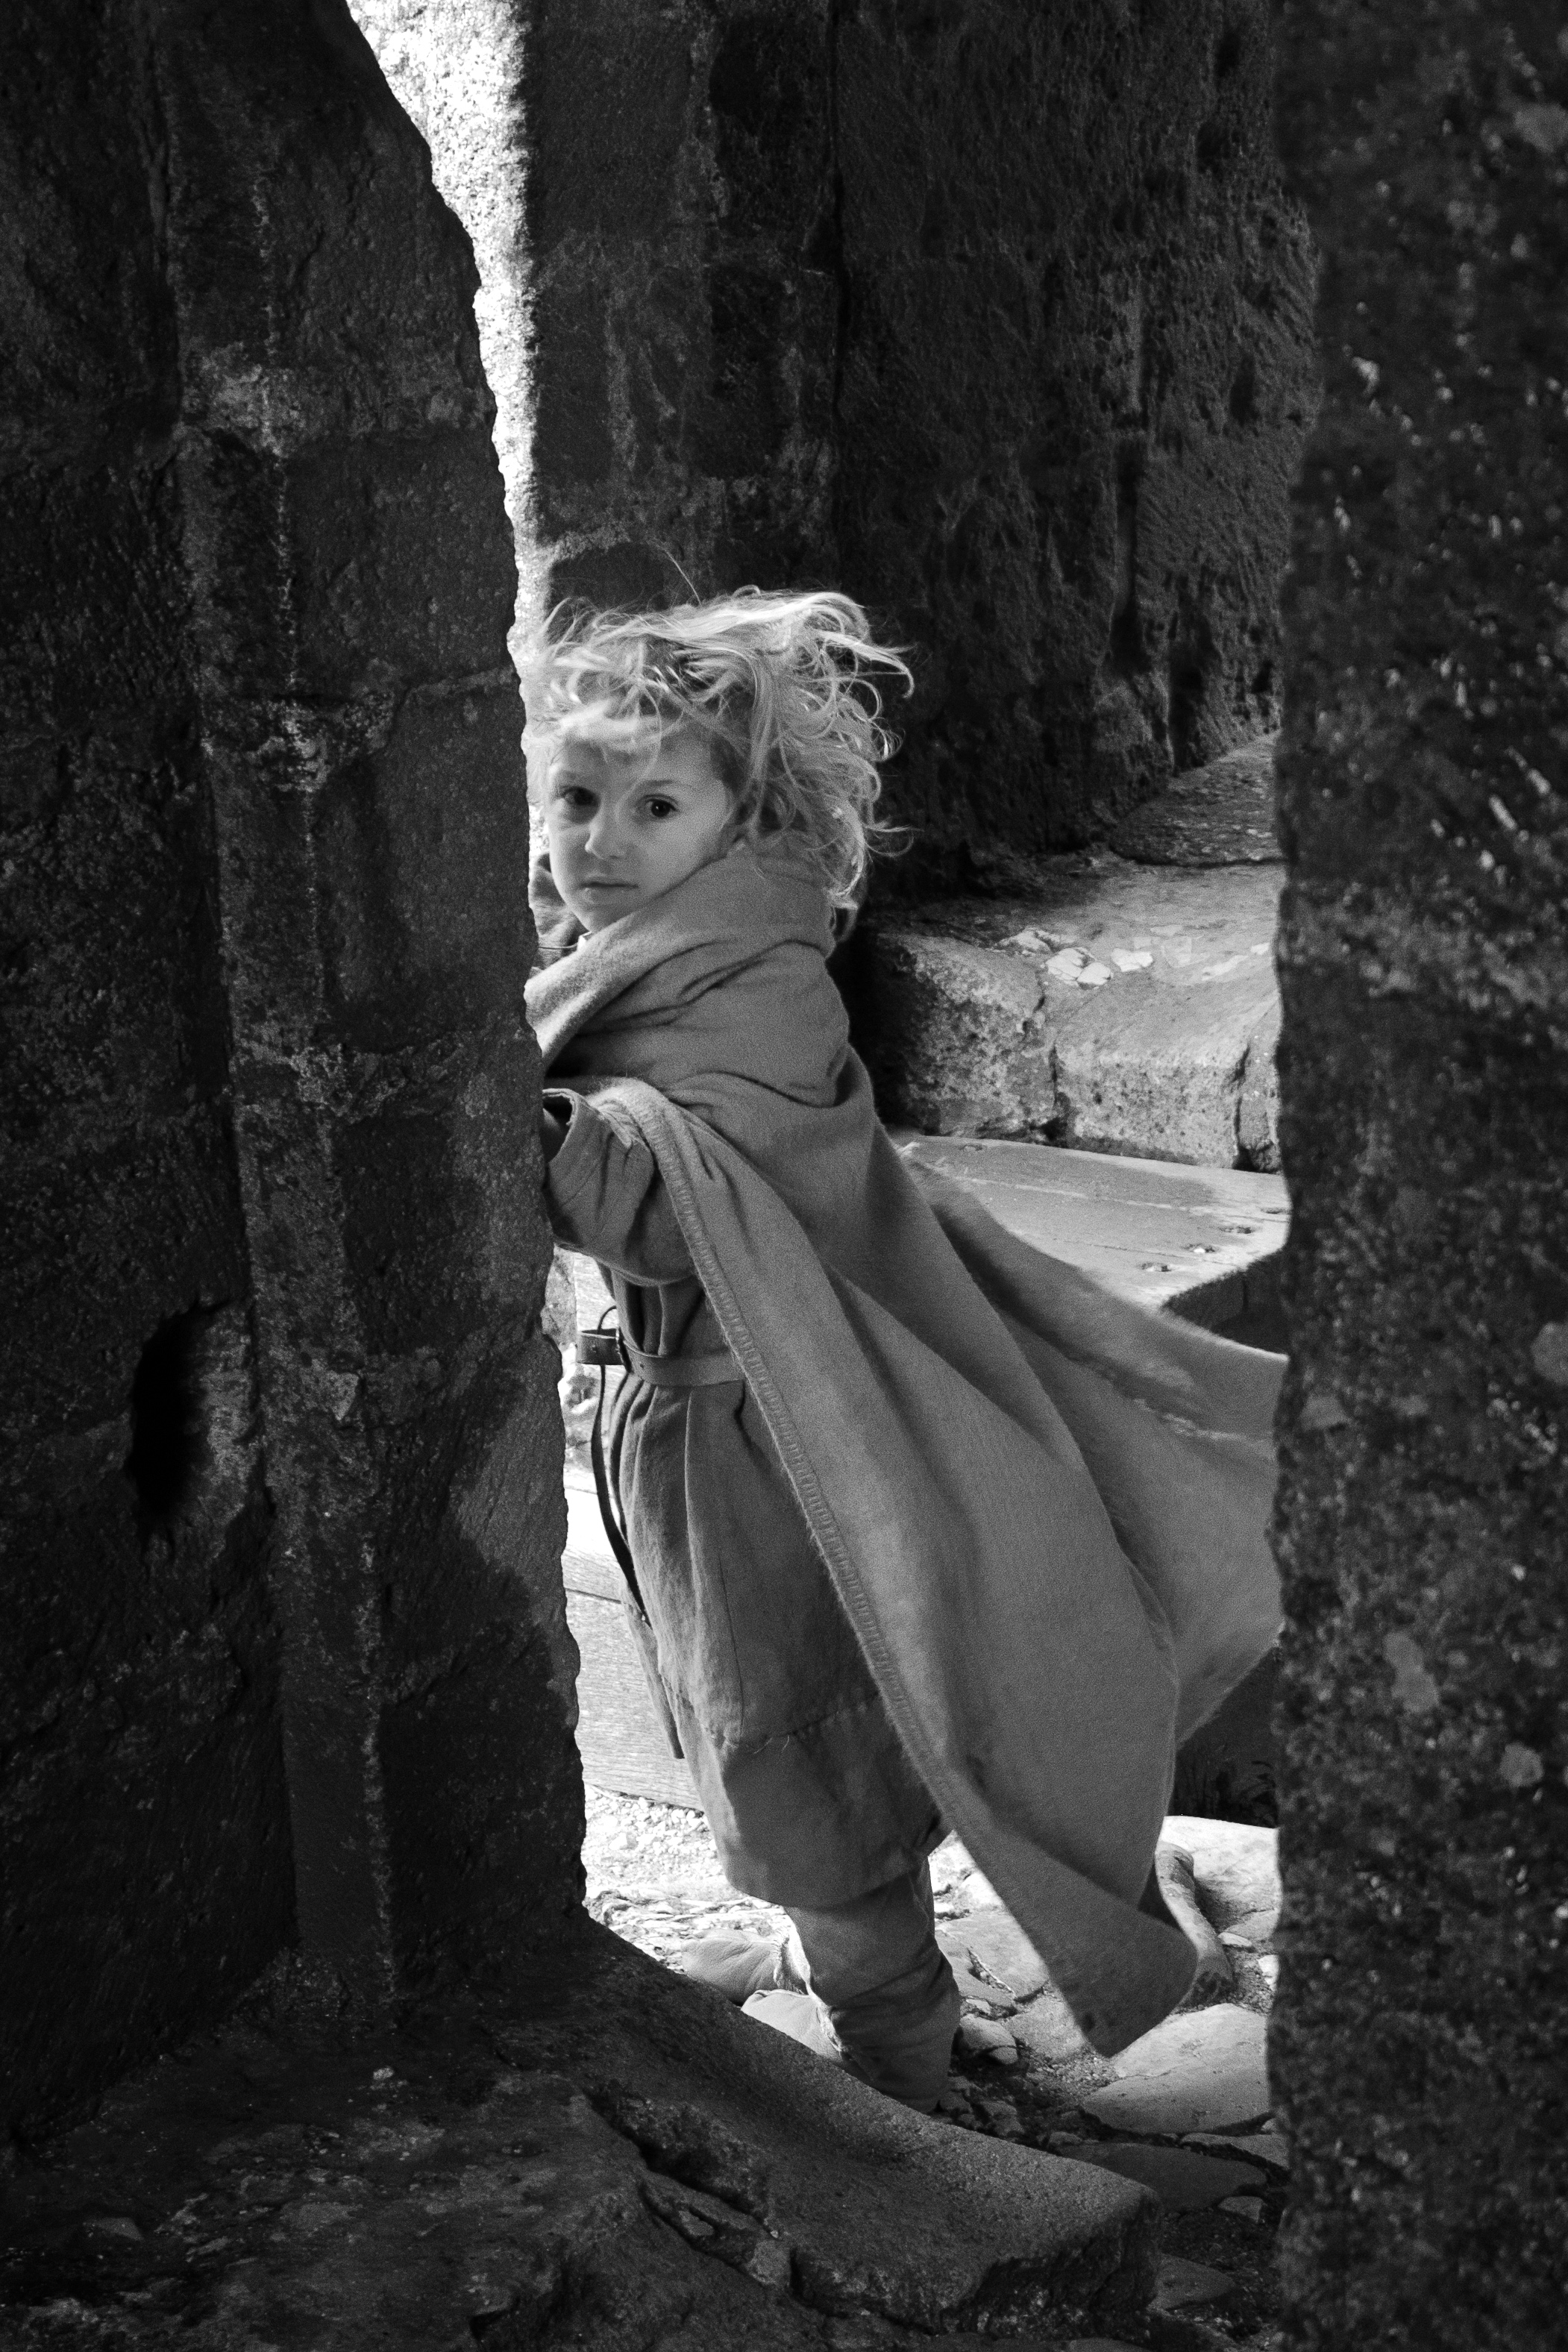 Child at historical re-enactment, Corfe Castle. © Mike Best